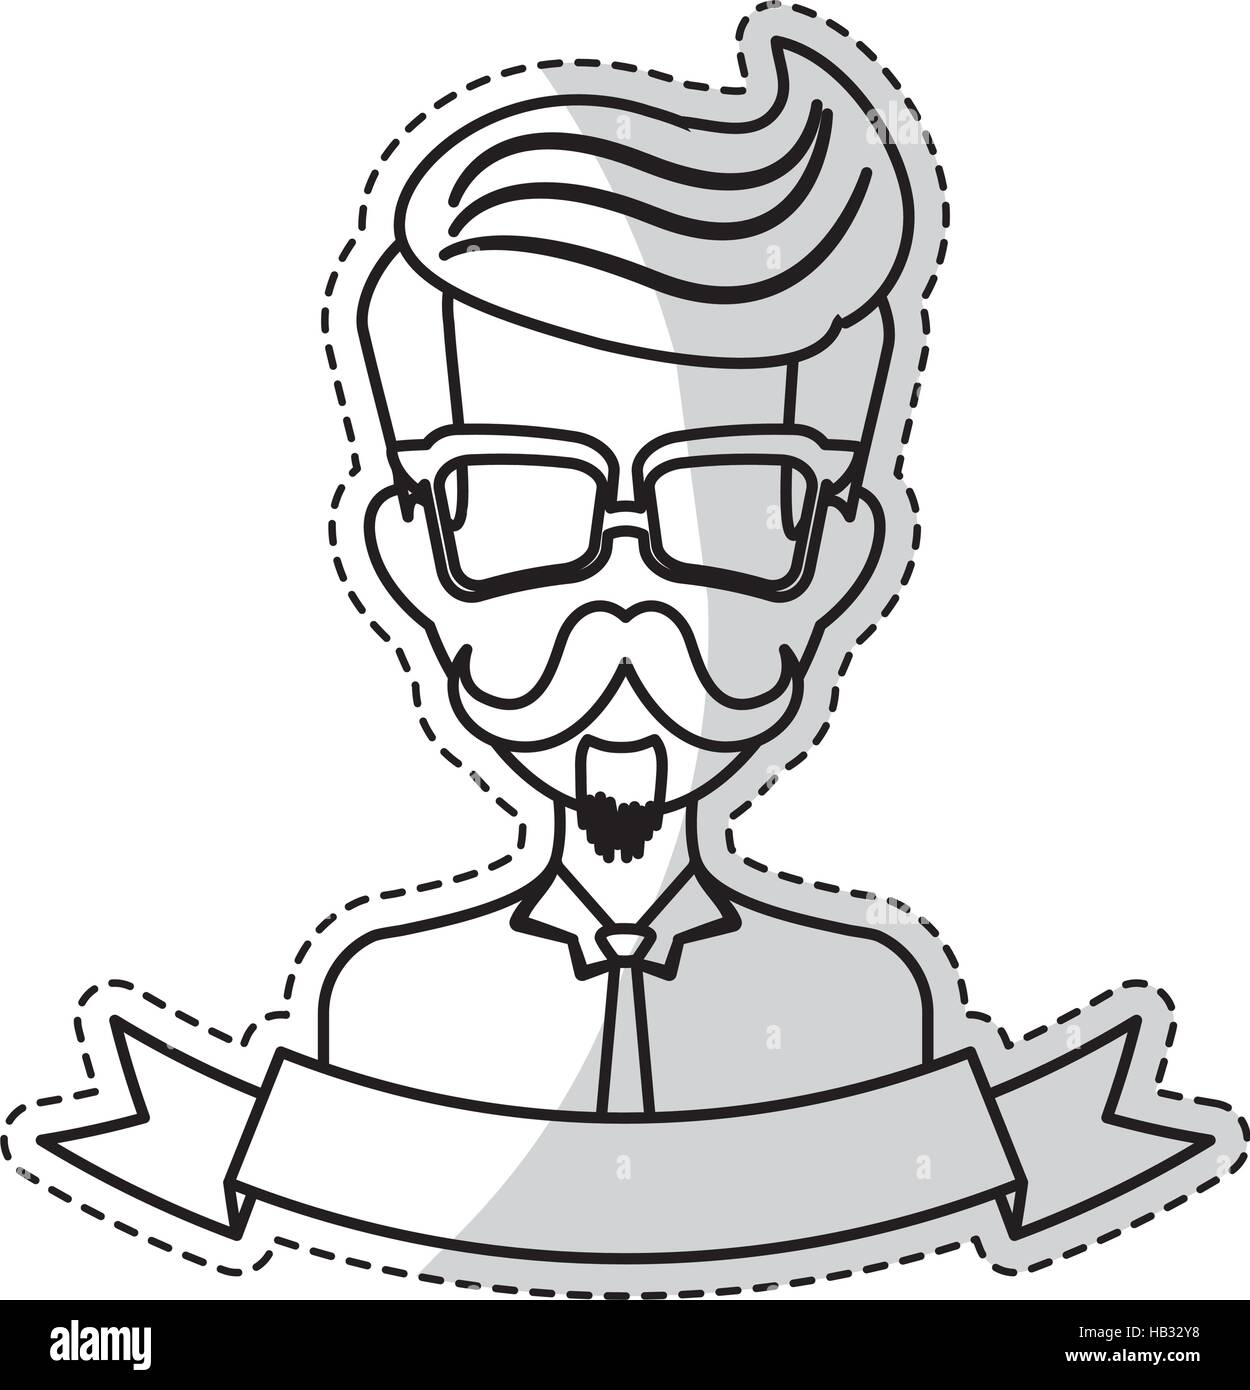 Sticker of man face with mustache and glasses and decorative ribbon over white background hispter style concept vector illustration